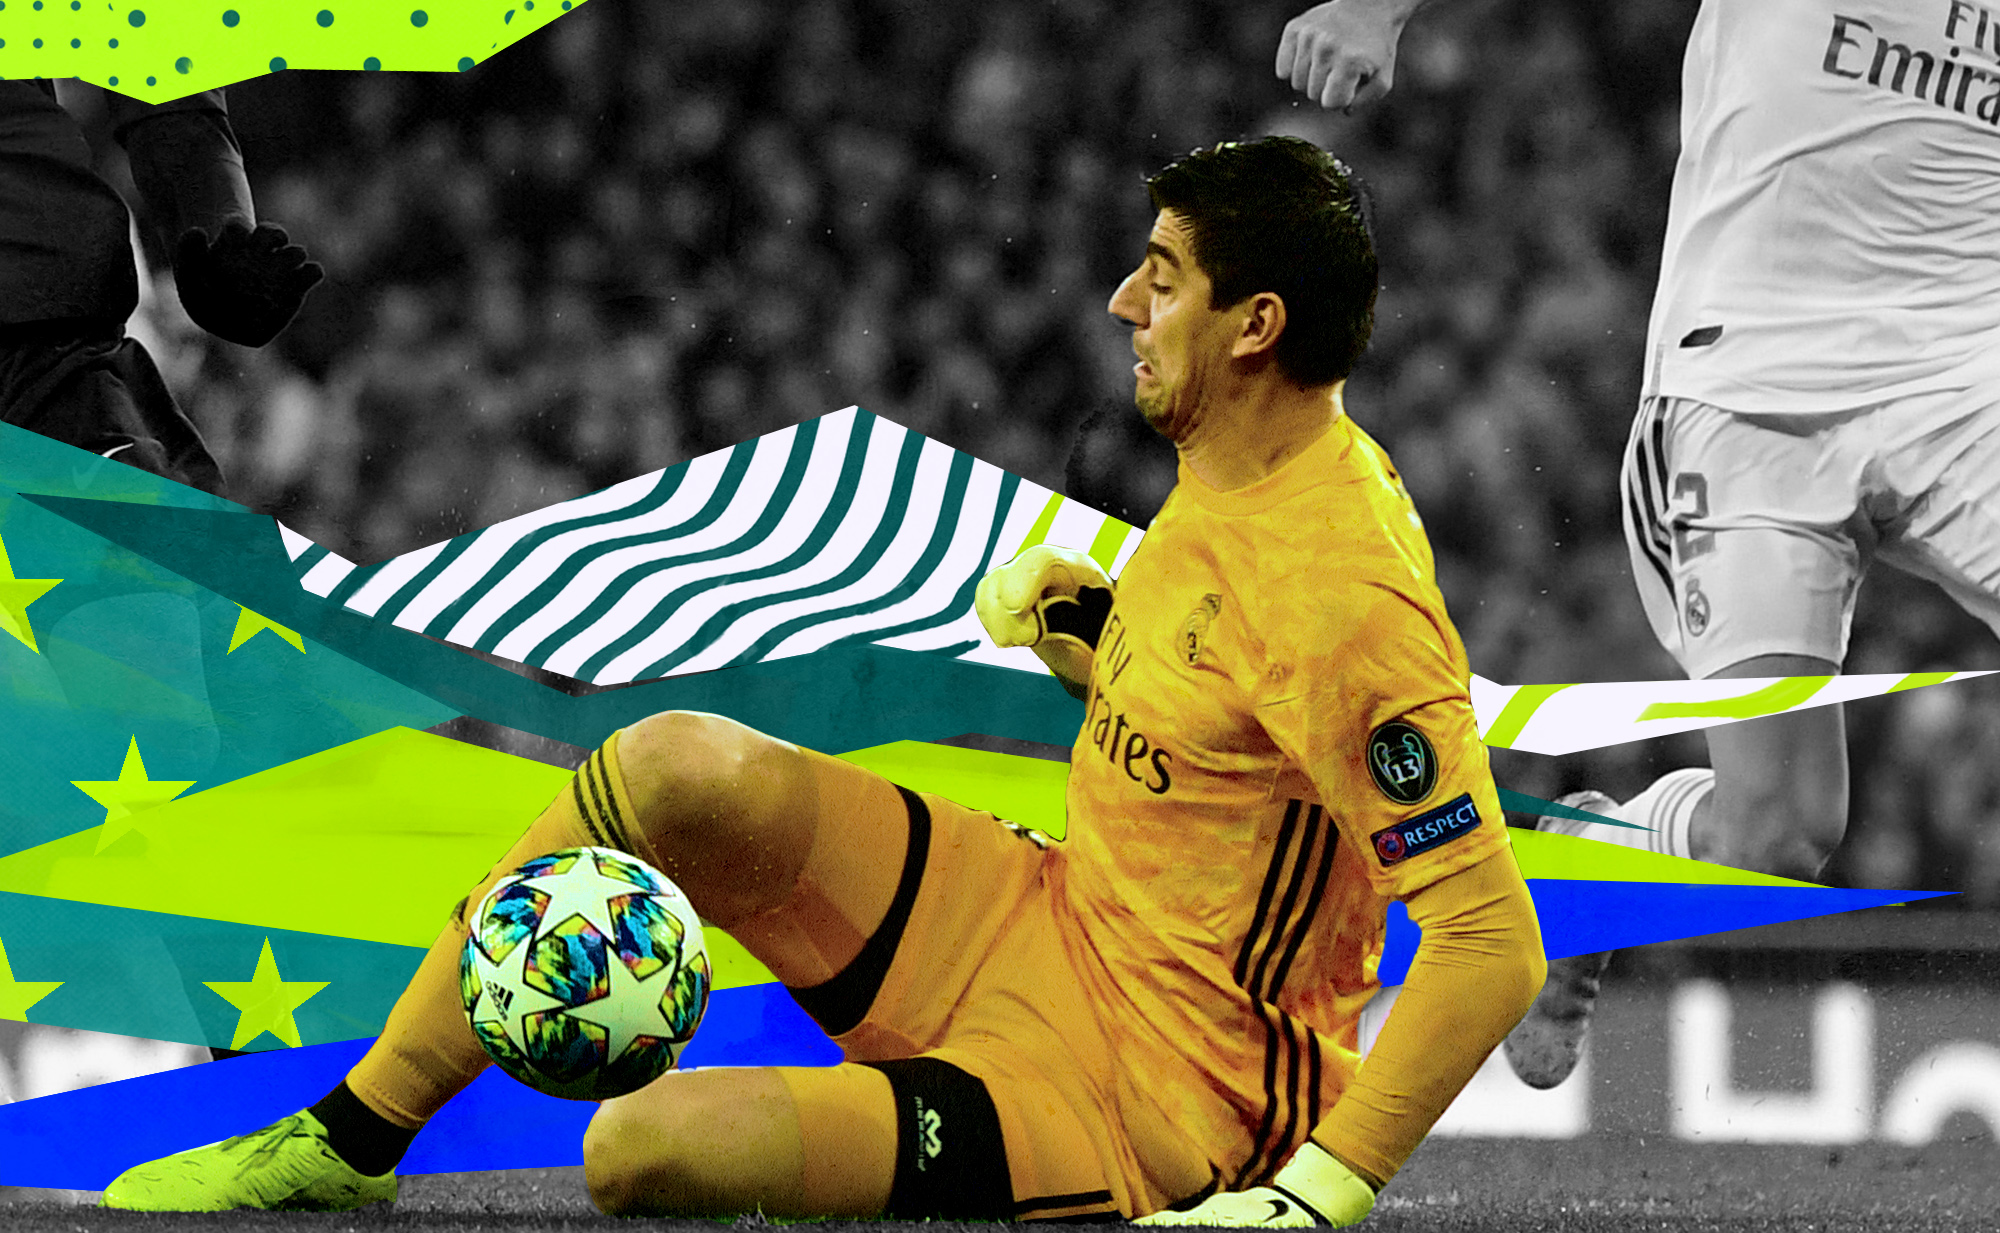 Thibaut Courtois' struggles are an embodiment of Real Madrid's hubris